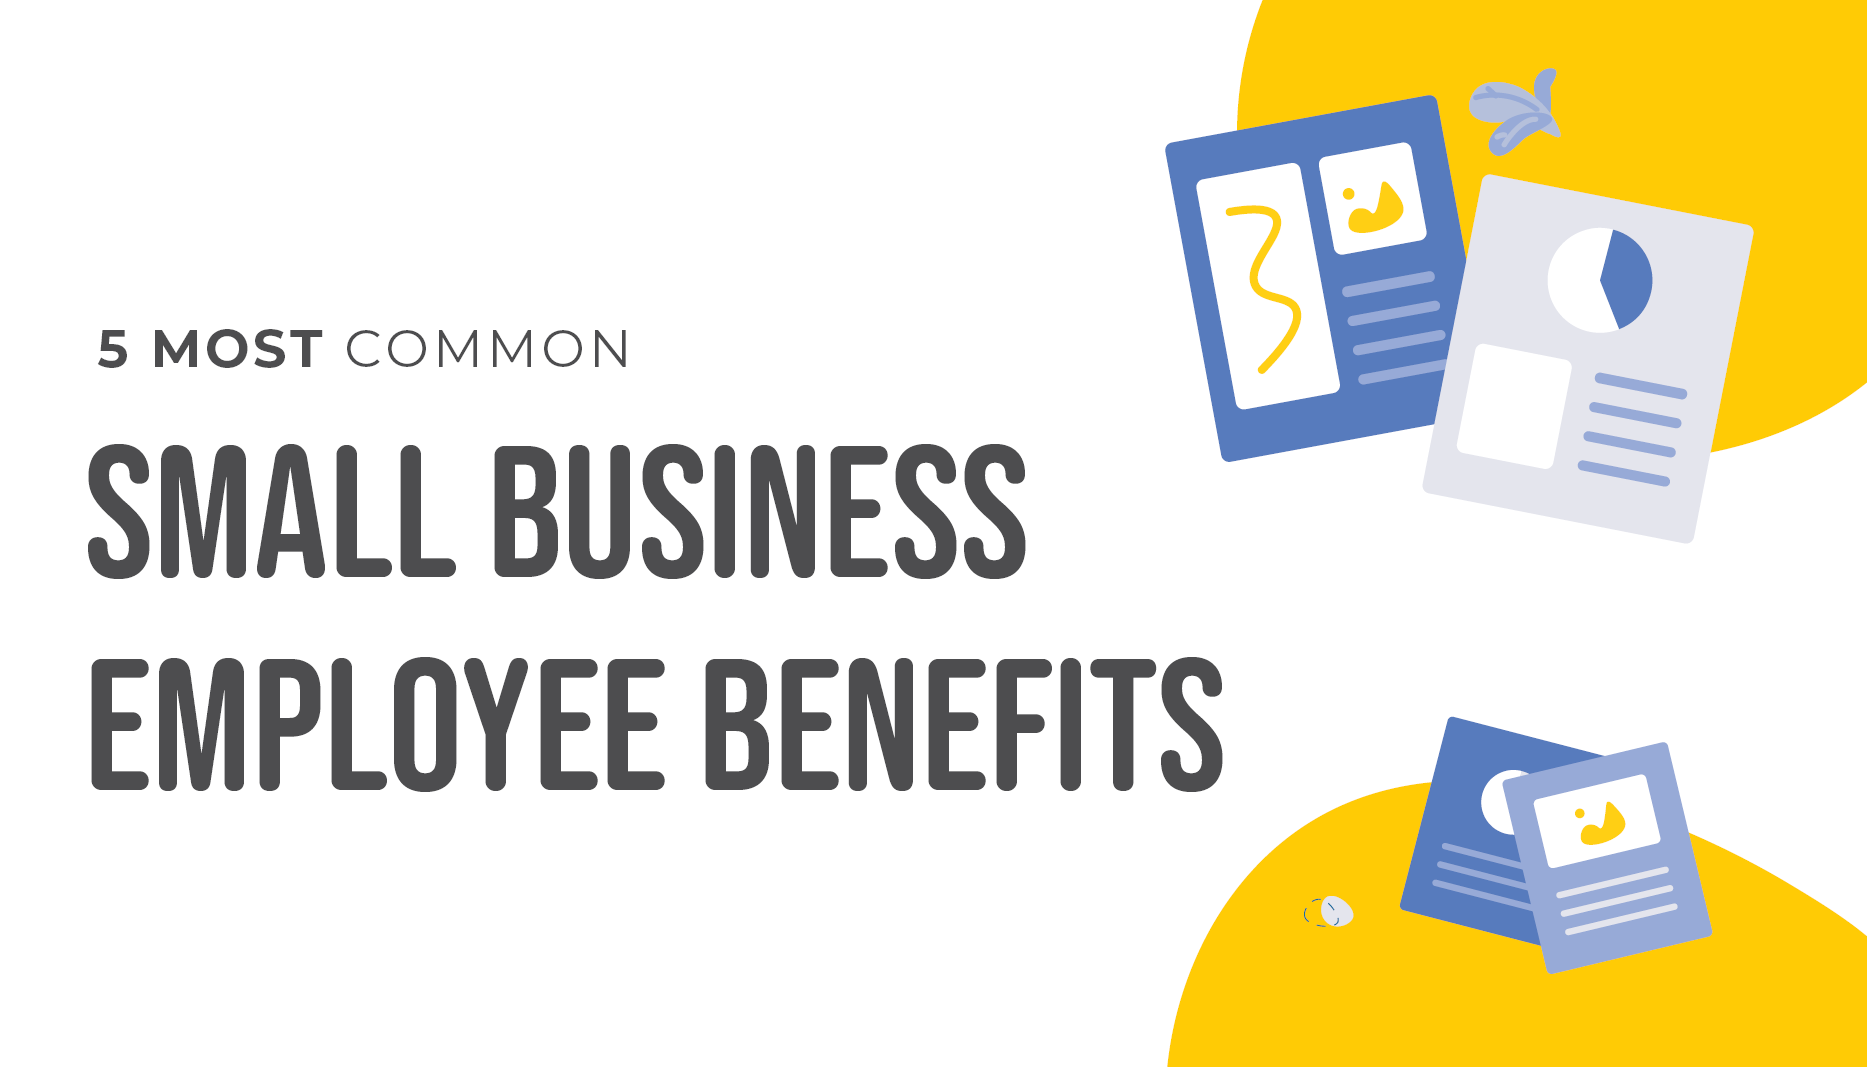 5 Most Common Small Business Employee Benefits | Benefits by Design